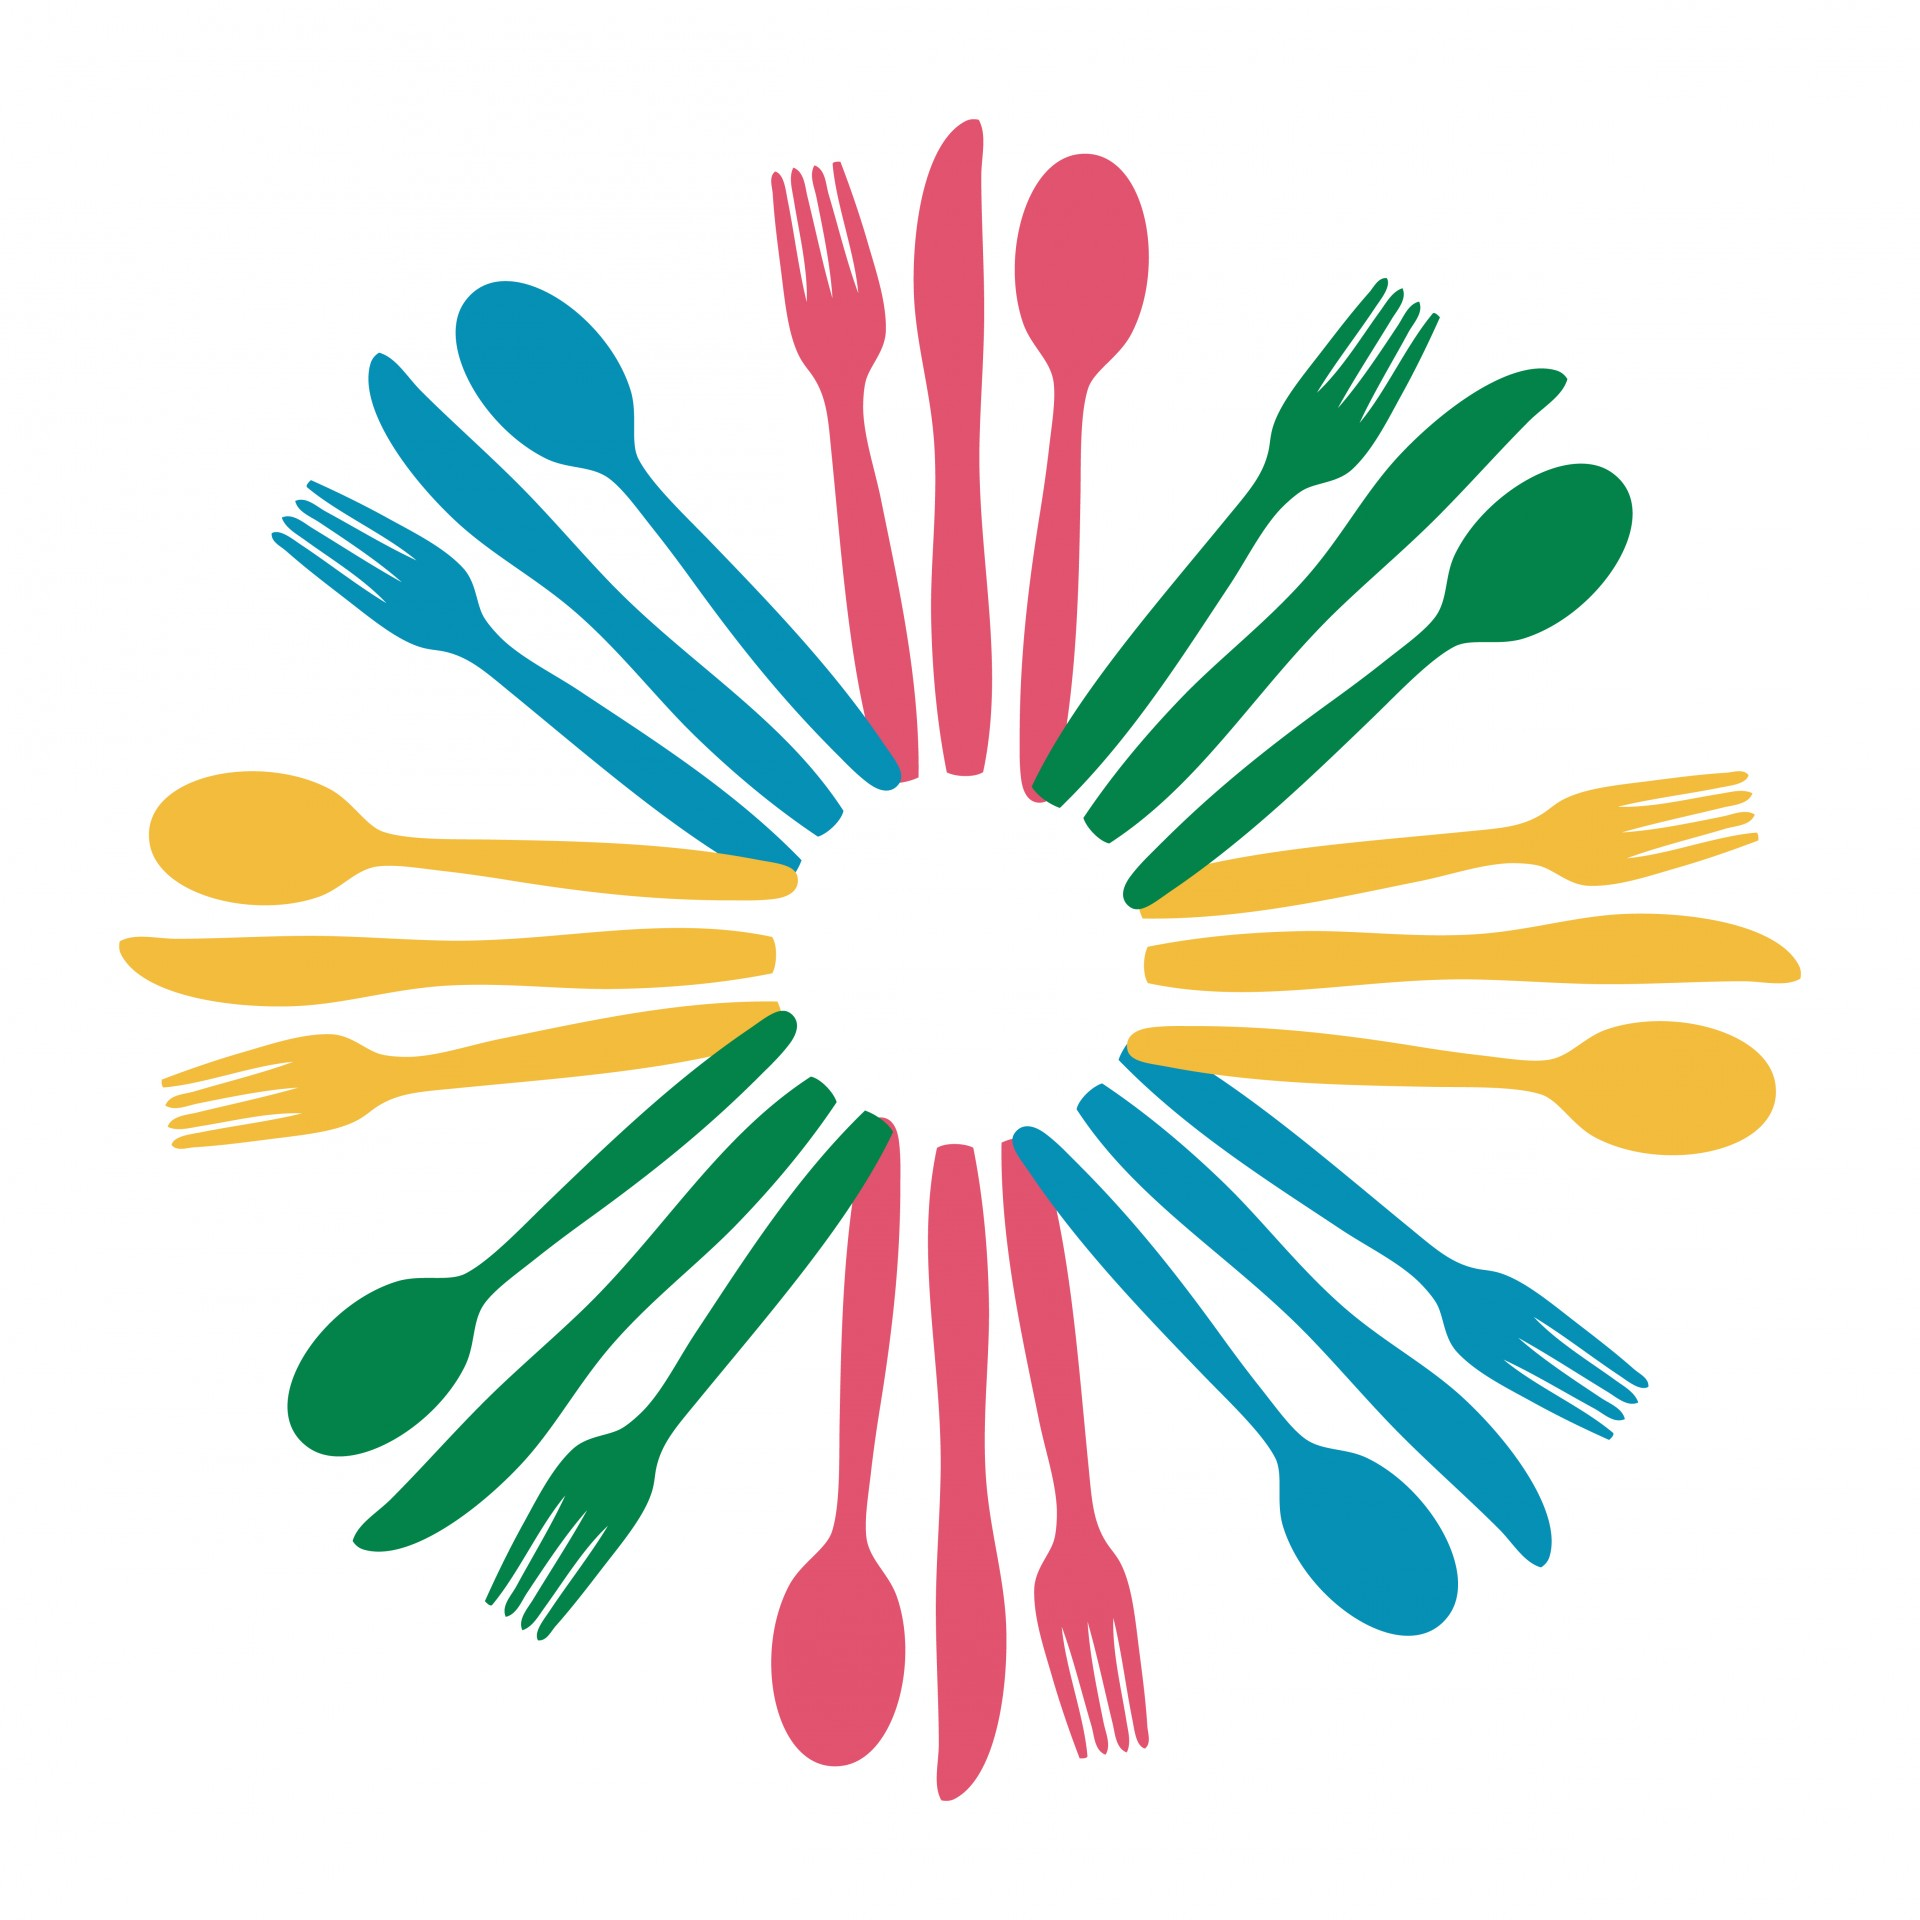 Colorful Cutlery Logo Clipart Free Stock Photo.